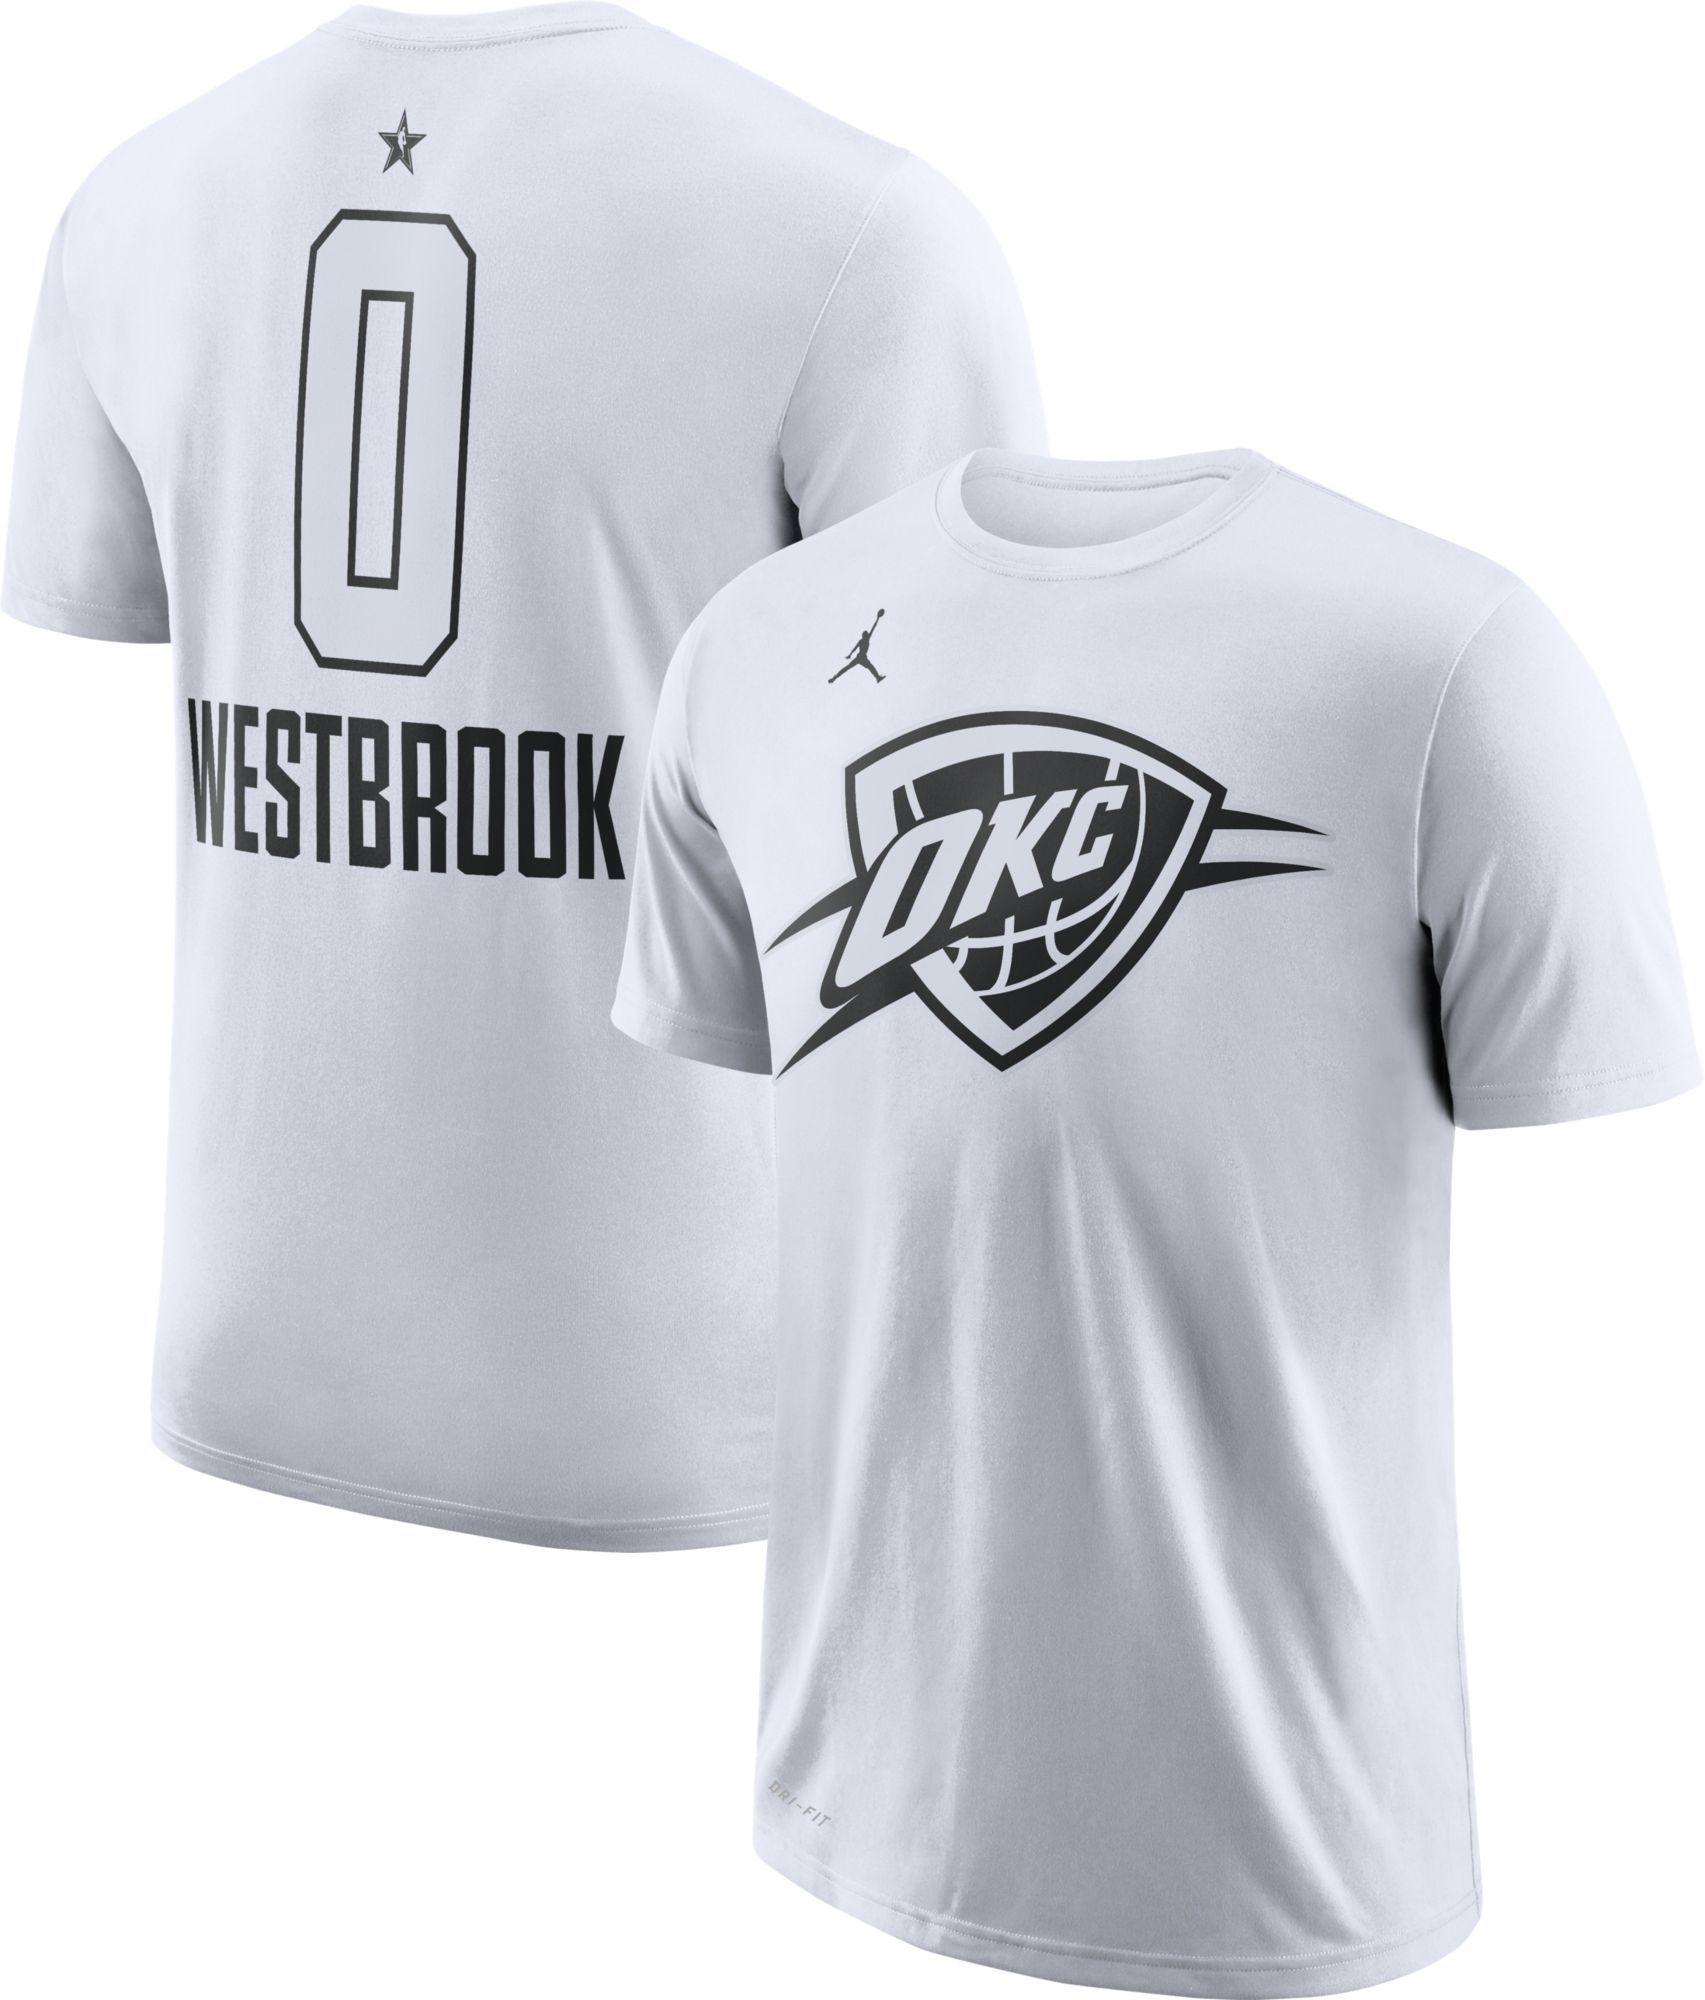 26cb77ce7 Jordan Men s 2018 NBA All-Star Game Russell Westbrook Dri-FIT White  T-Shirt